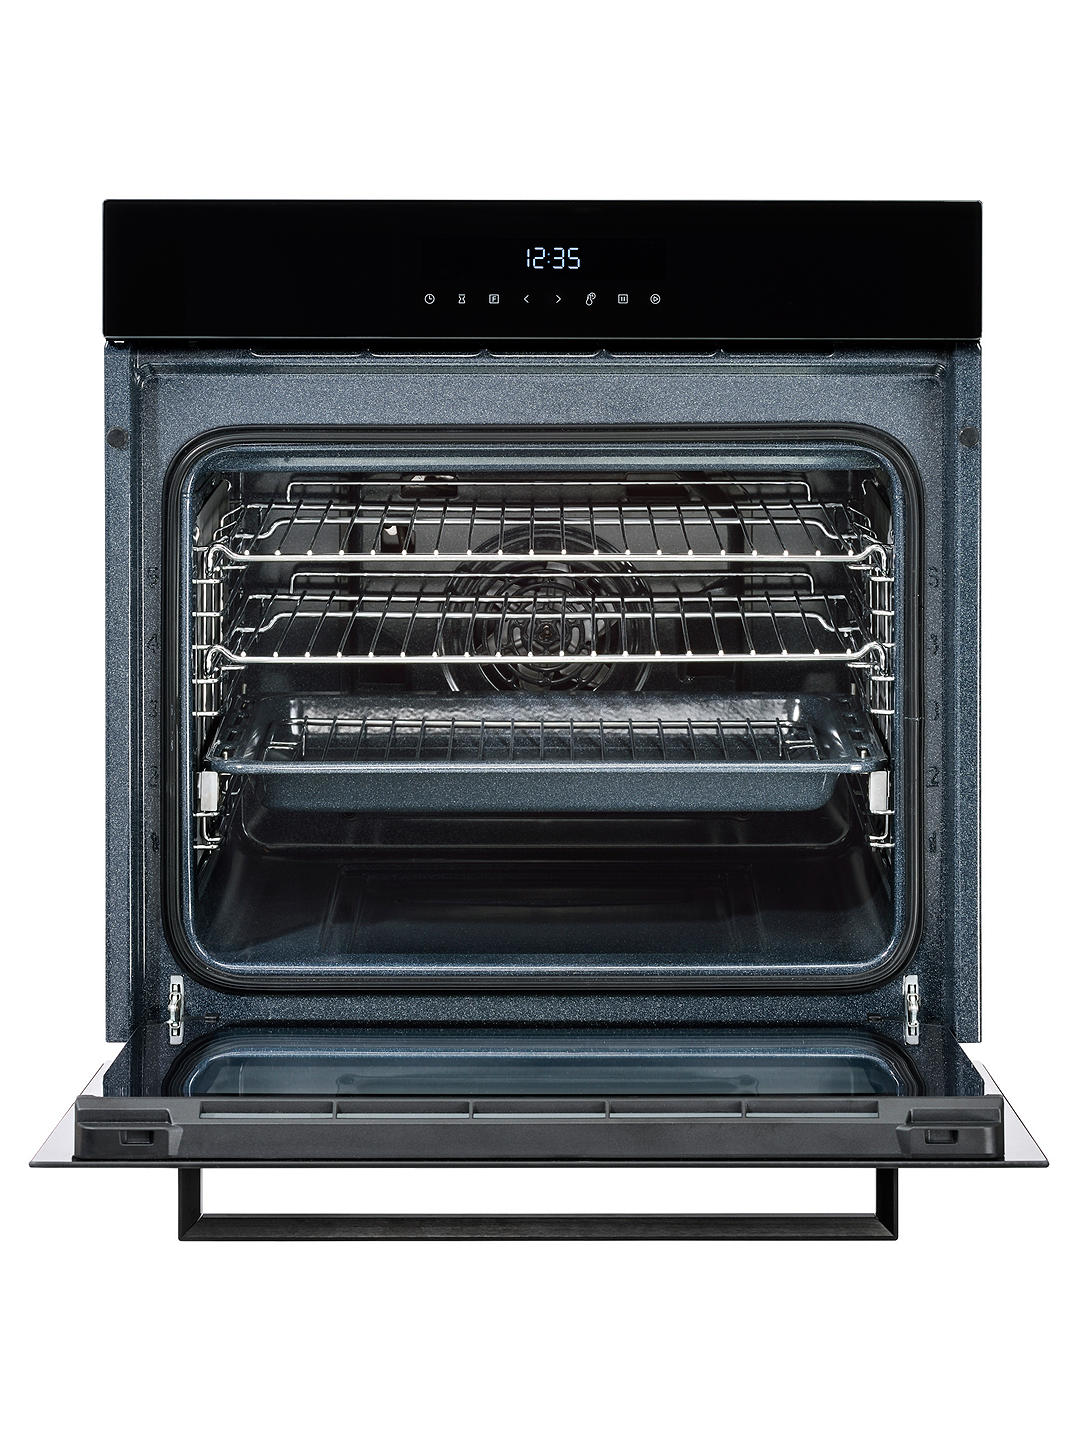 Buy Stoves SEB602MFC Built-In Single Electric Oven, Black Online at johnlewis.com